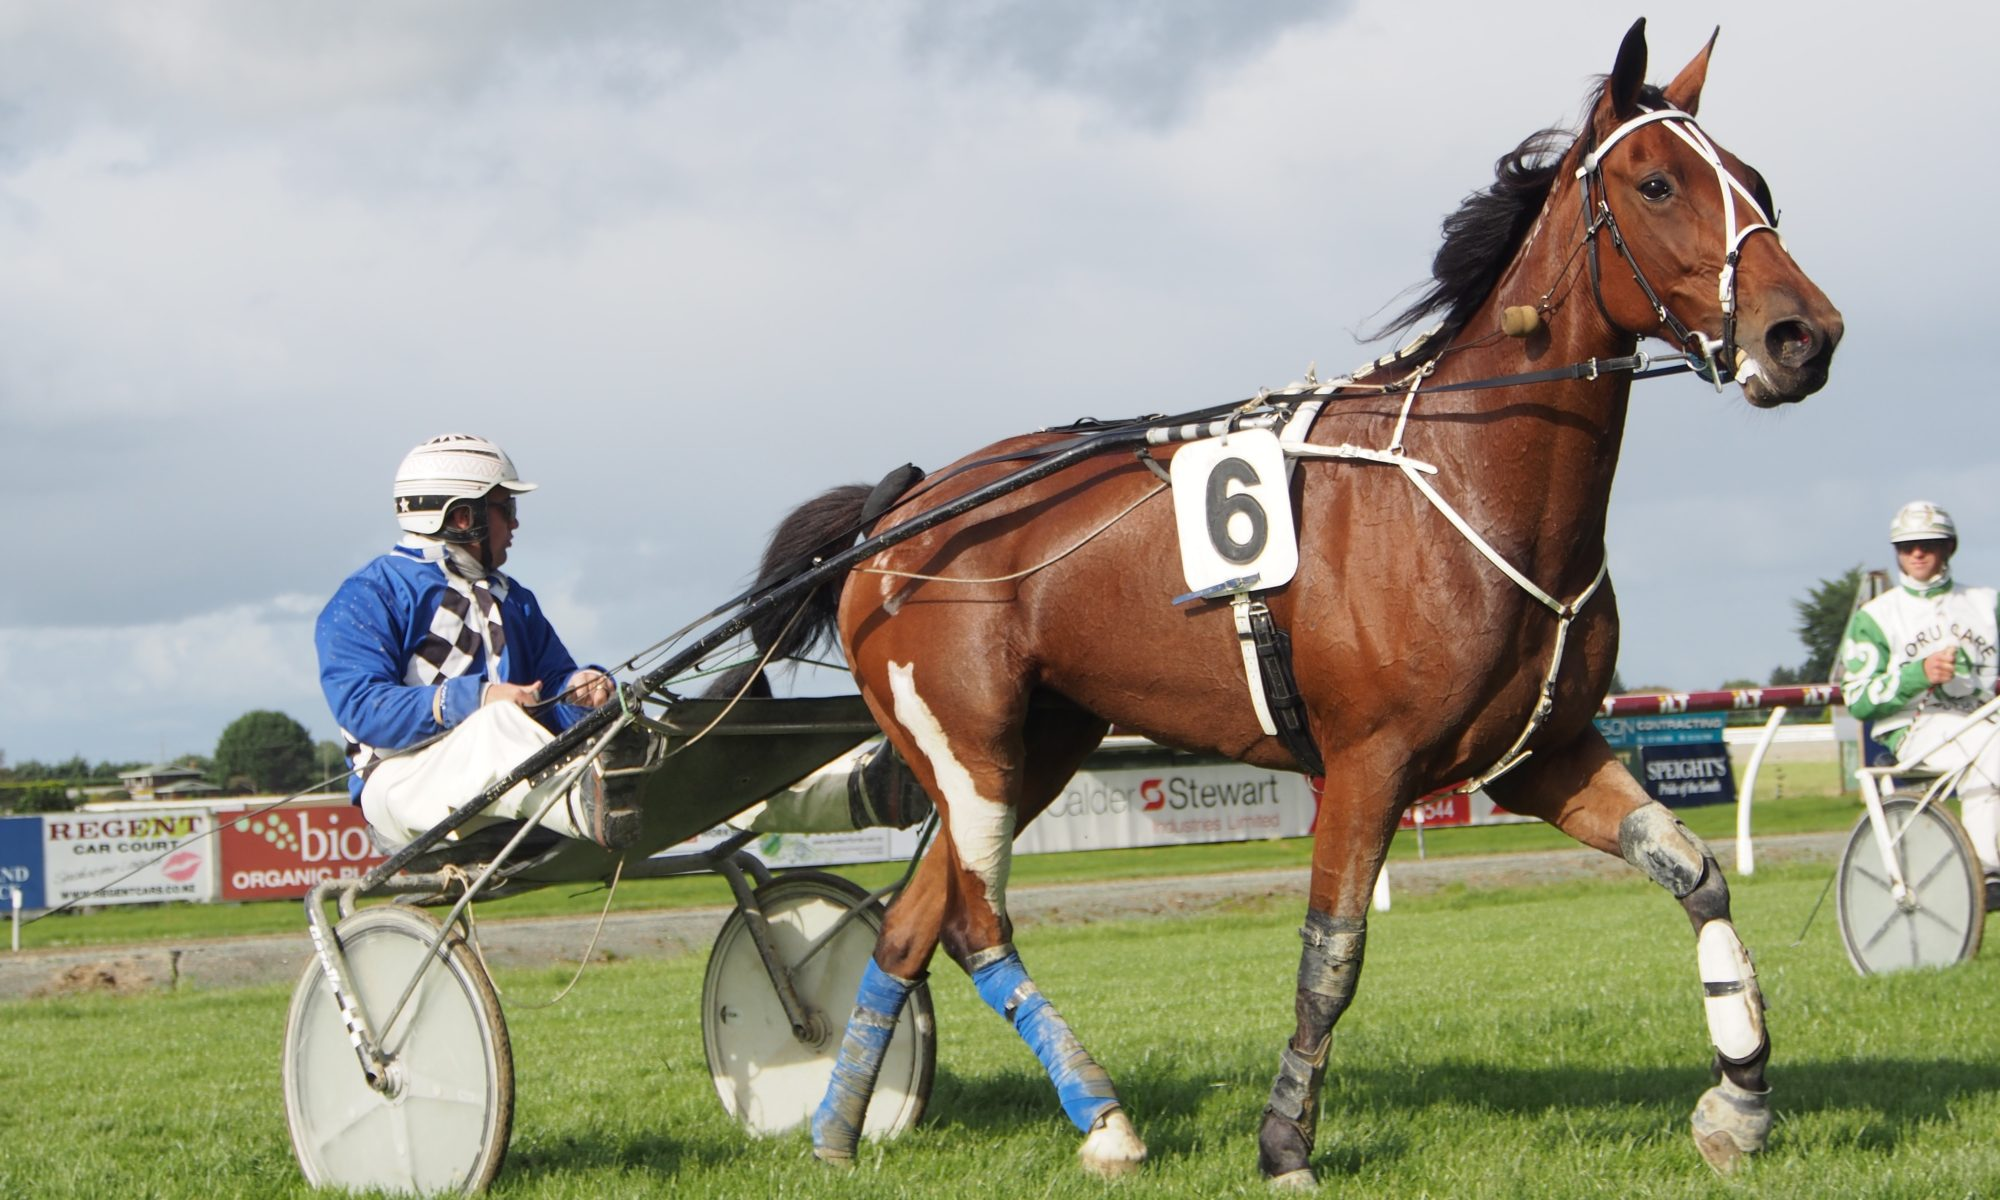 Southern Harness Racing